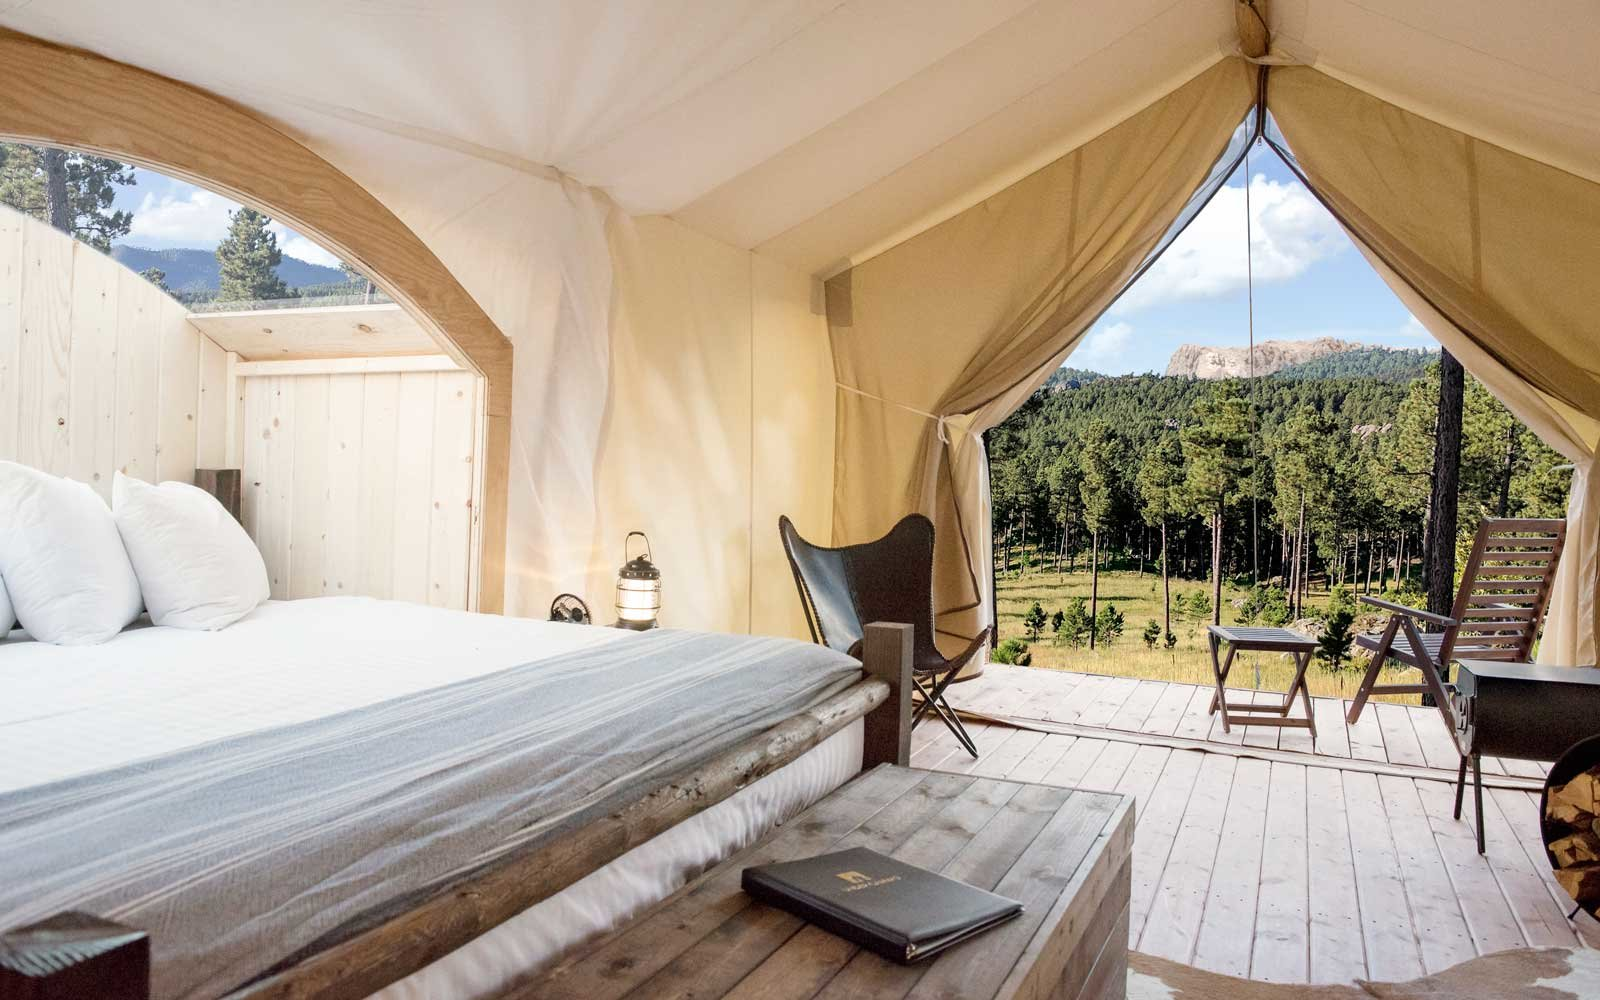 This Gorgeous New Glamping Site Is the Best Way to See Mount Rushmore